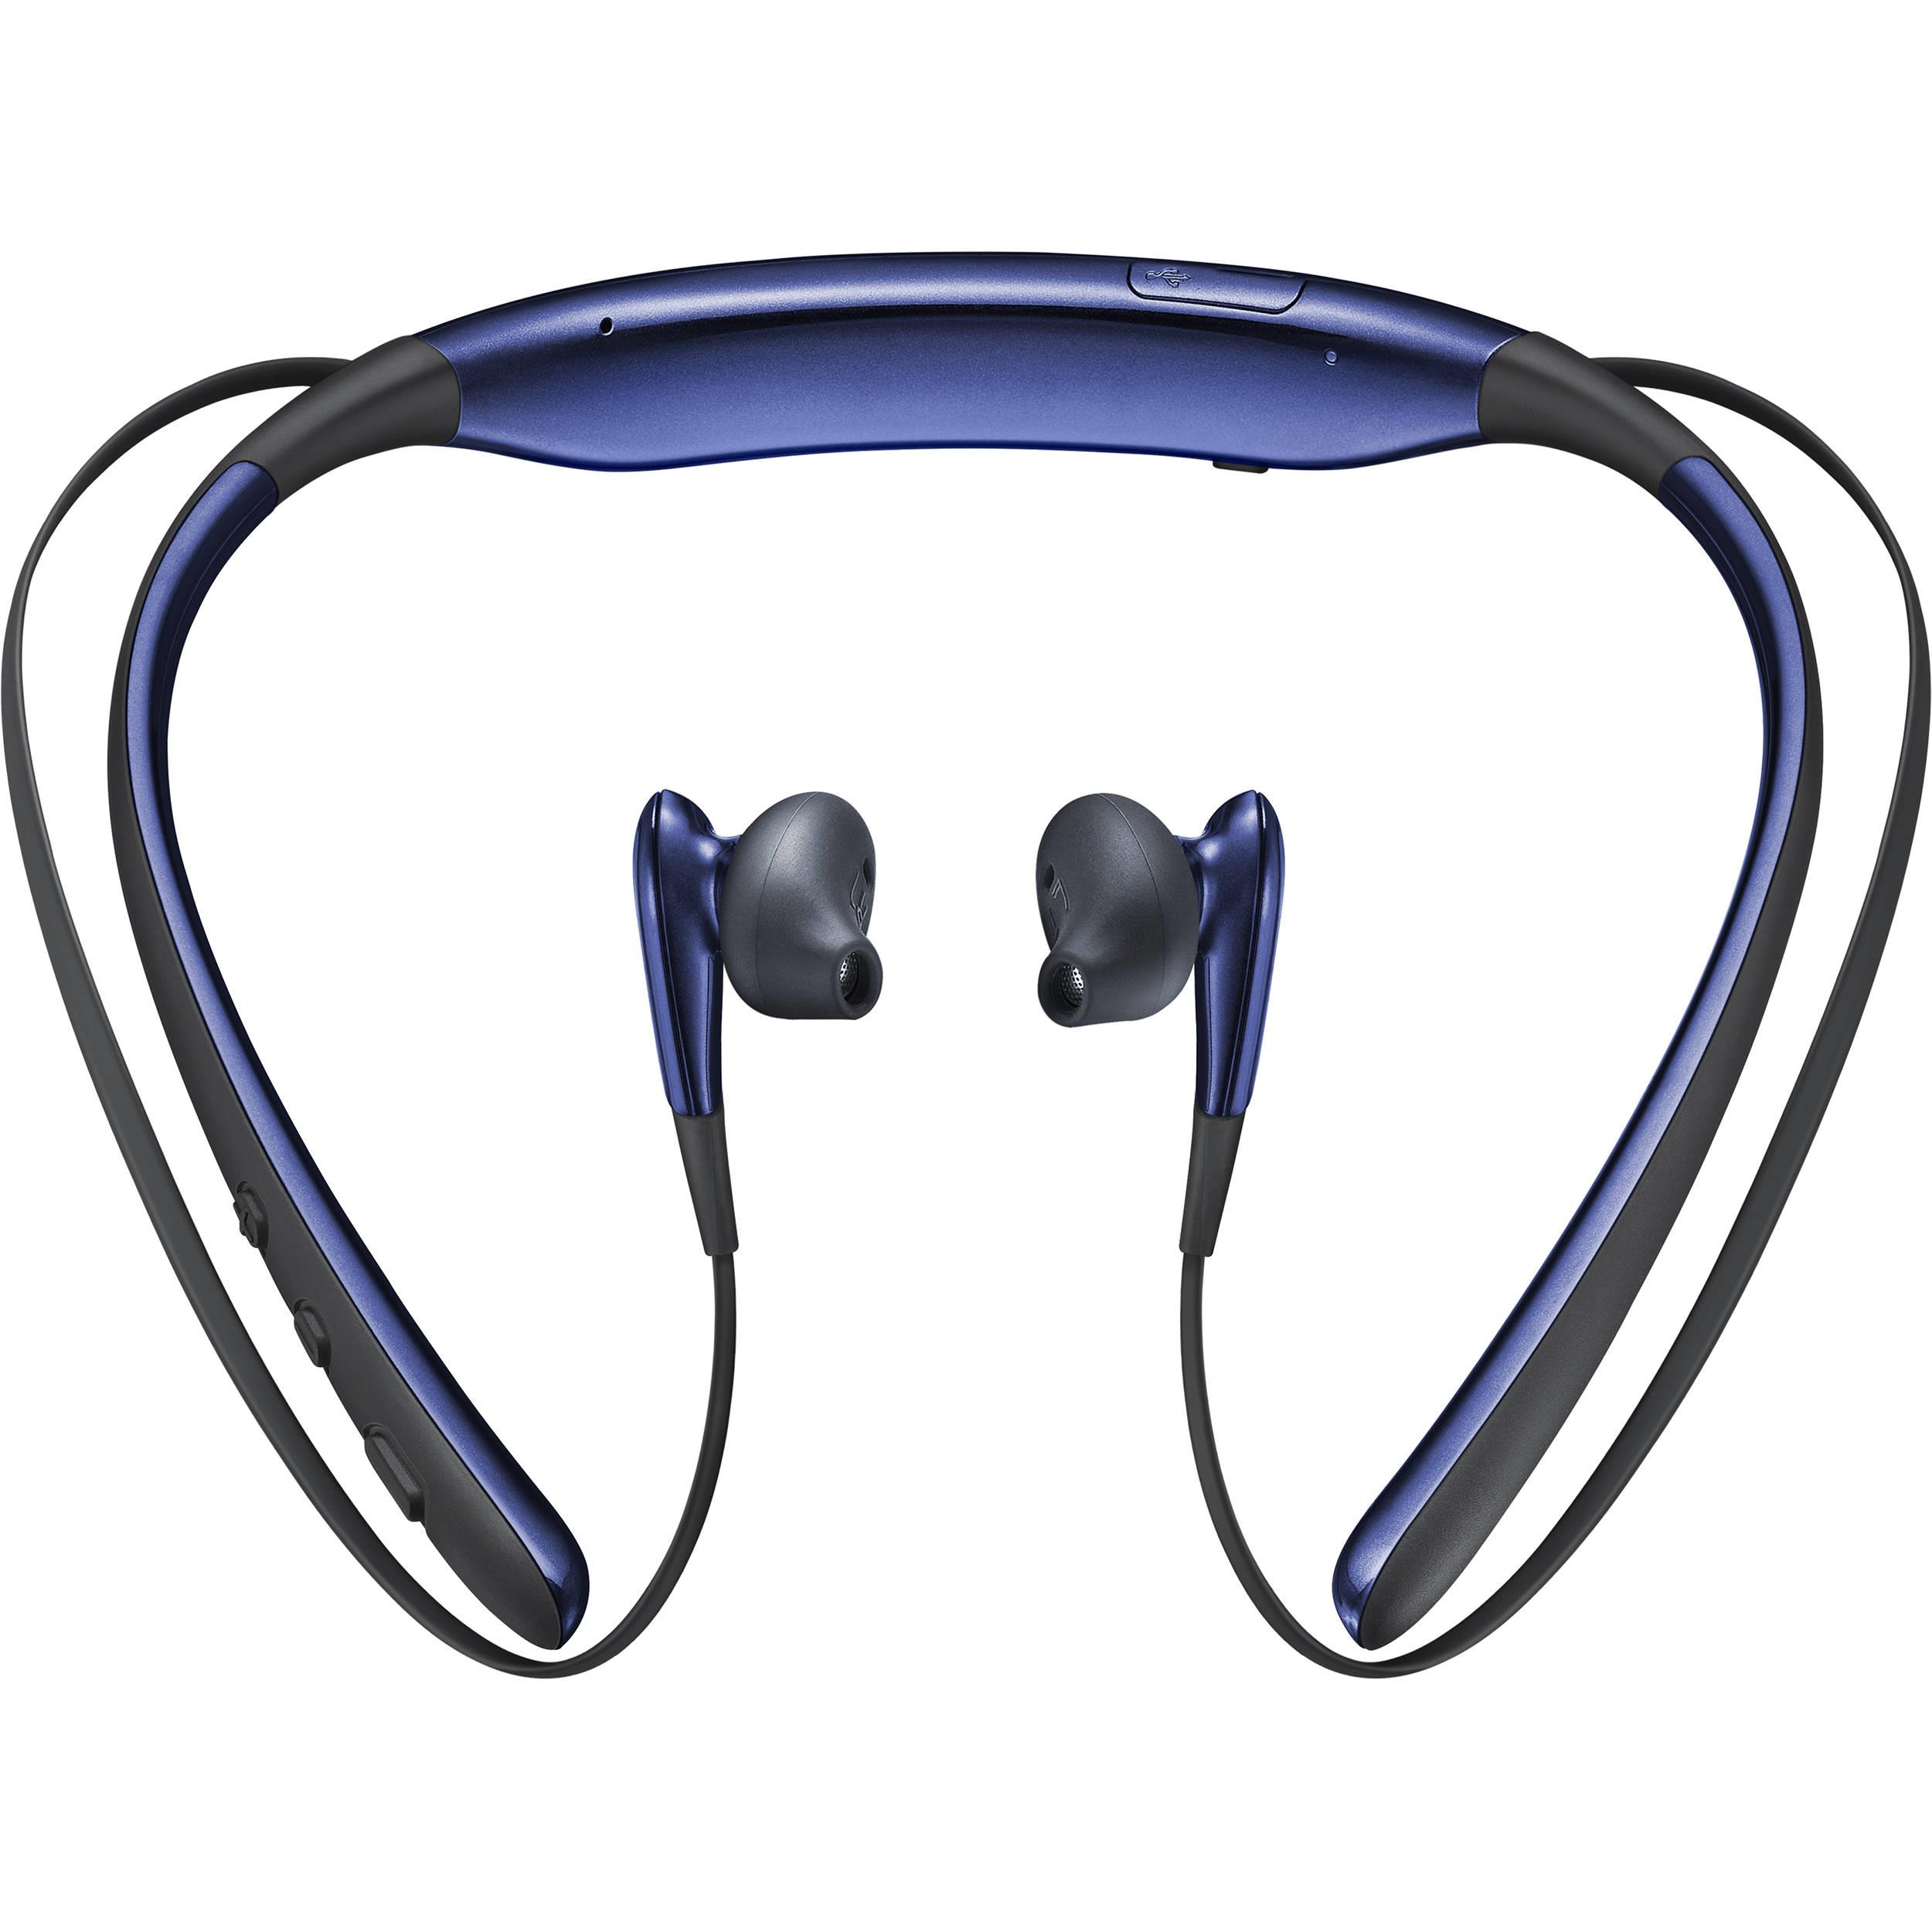 Samsung Level U Wireless Headphones Image